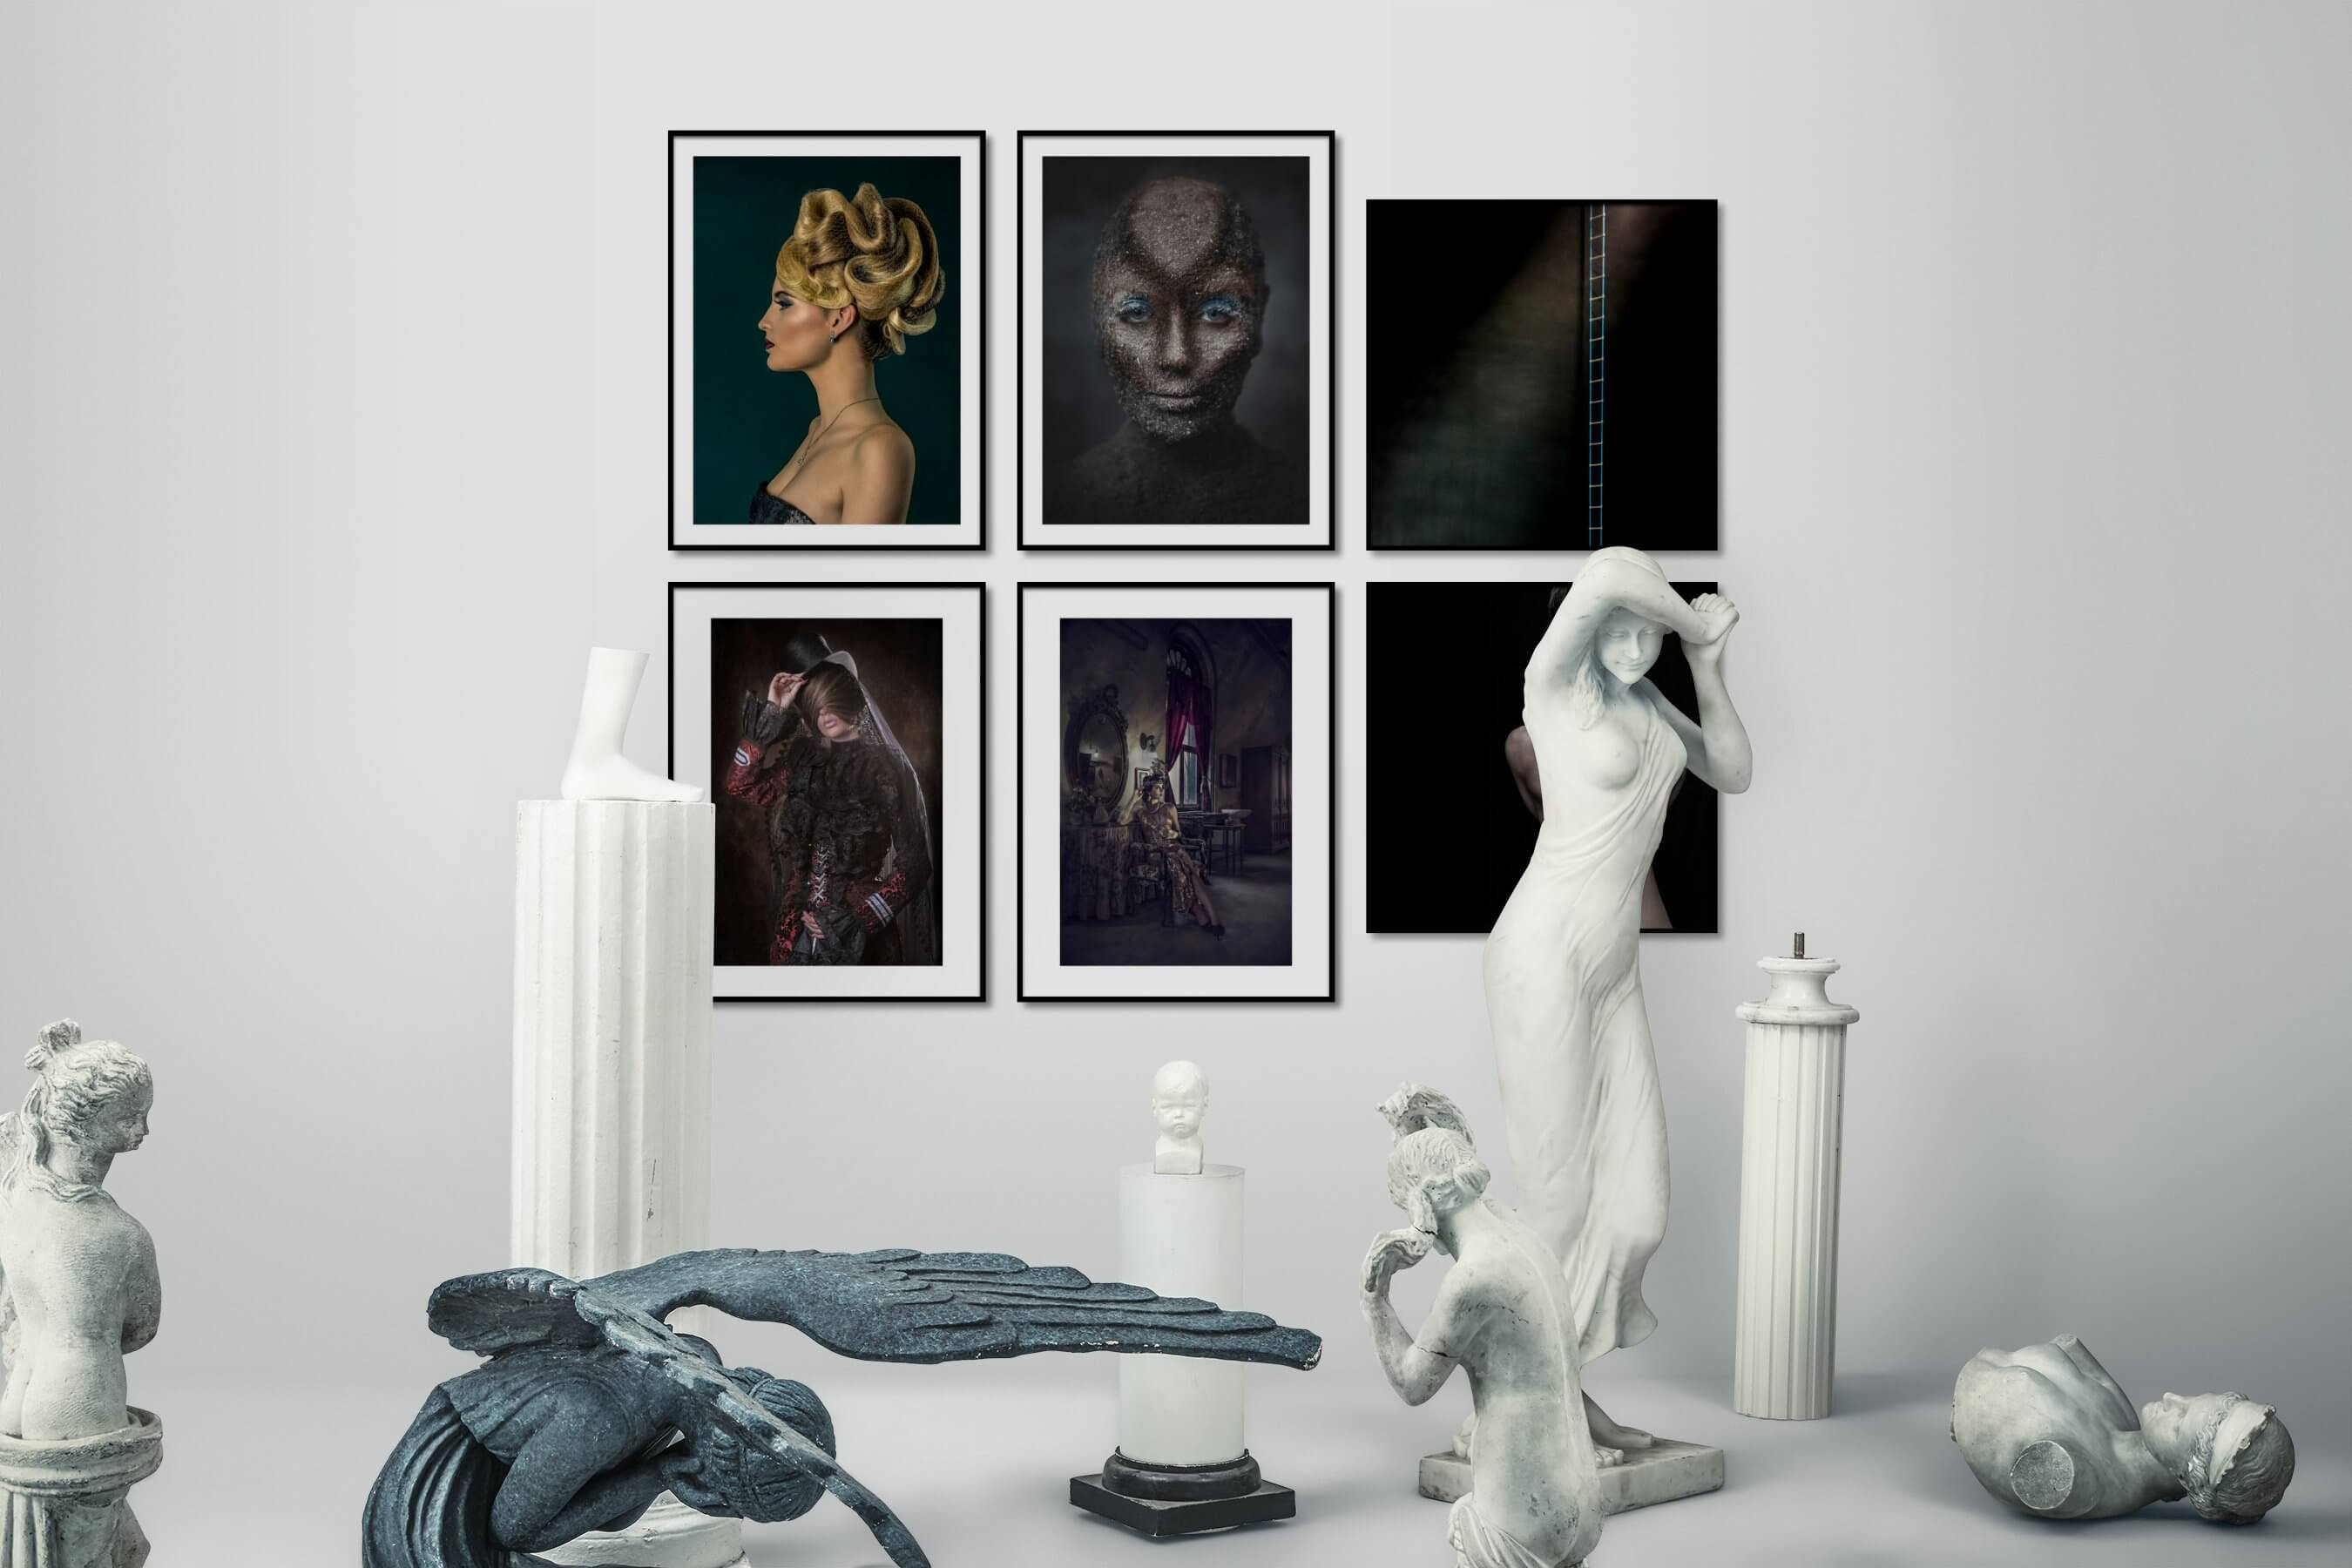 Gallery wall idea with six framed pictures arranged on a wall depicting Fashion & Beauty, Artsy, Vintage, Dark Tones, and For the Minimalist